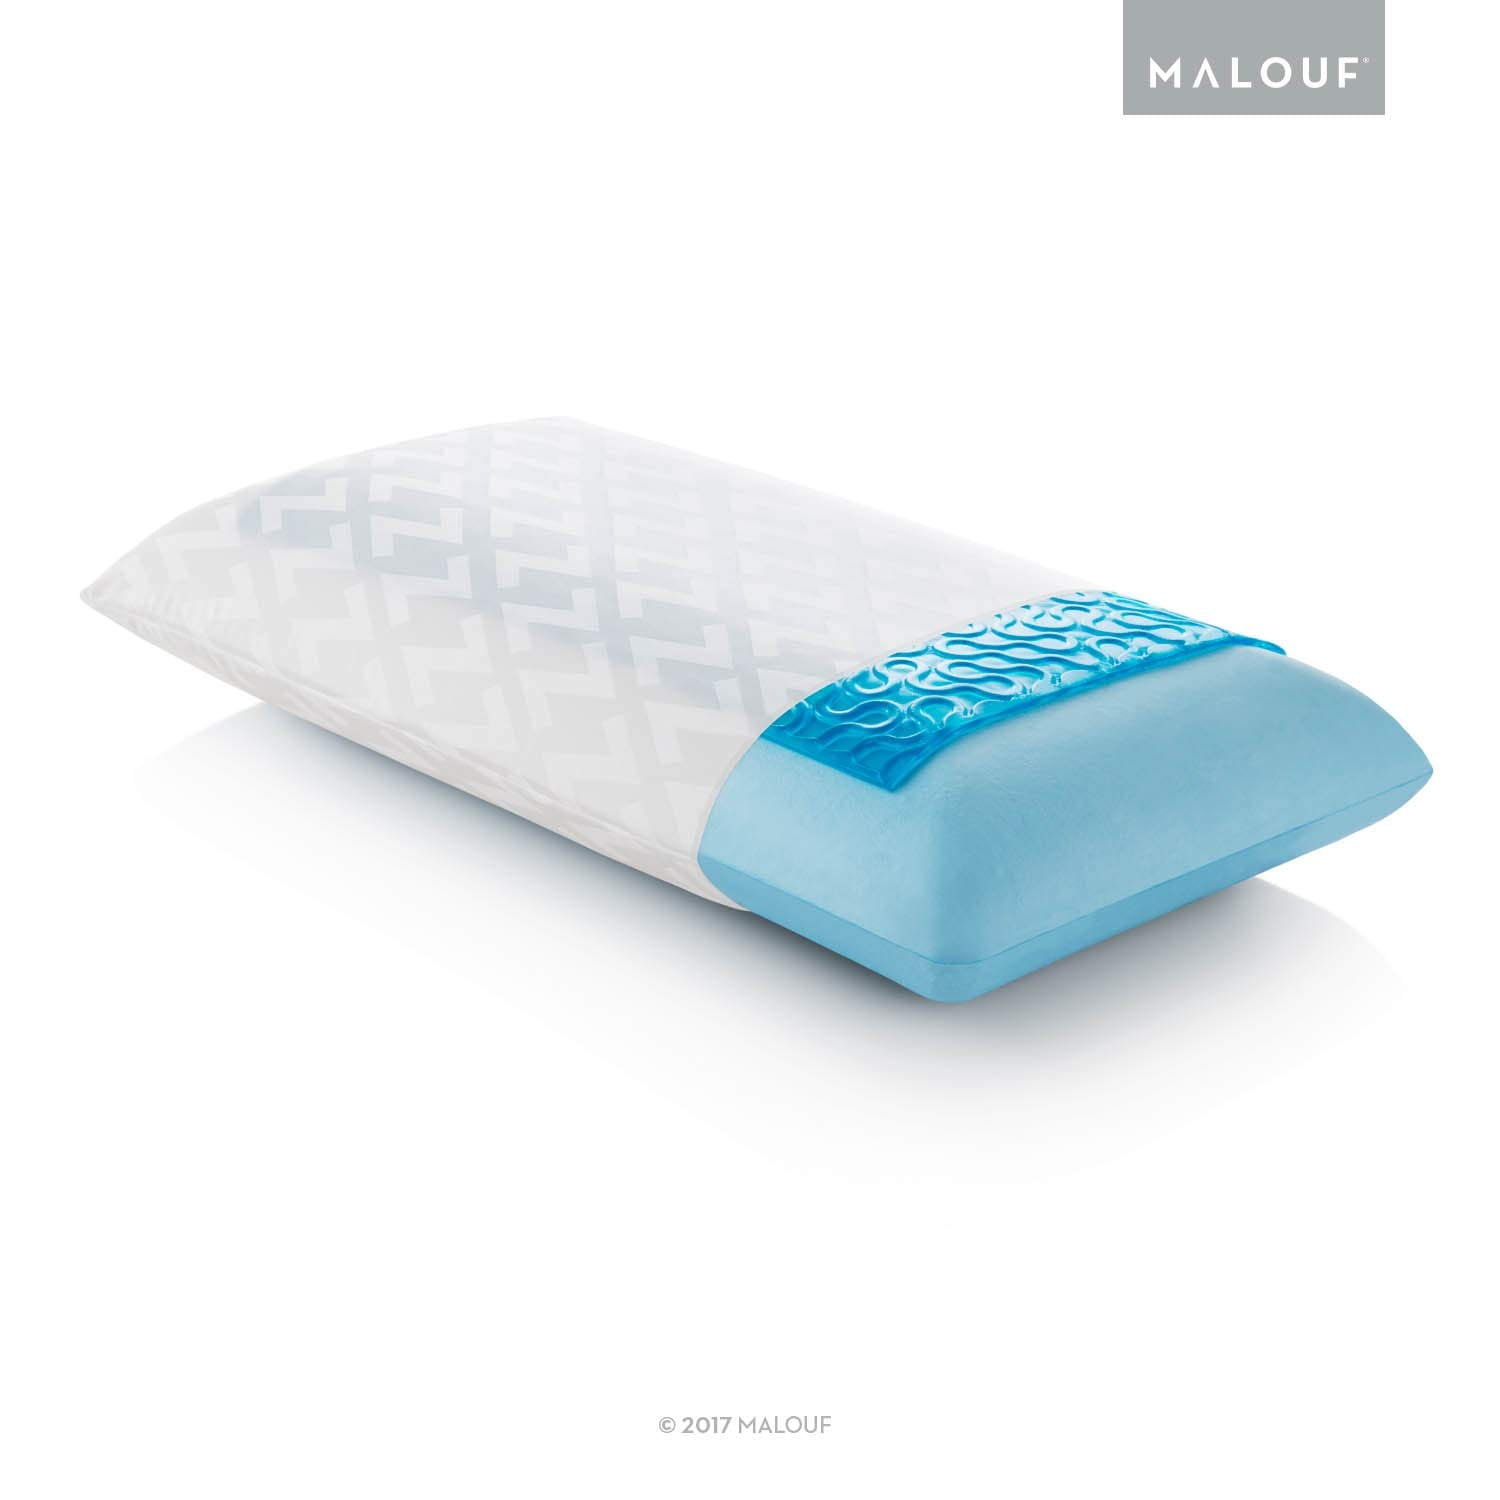 MALOUF Gel Pillow Review by www.snoremagazine.com